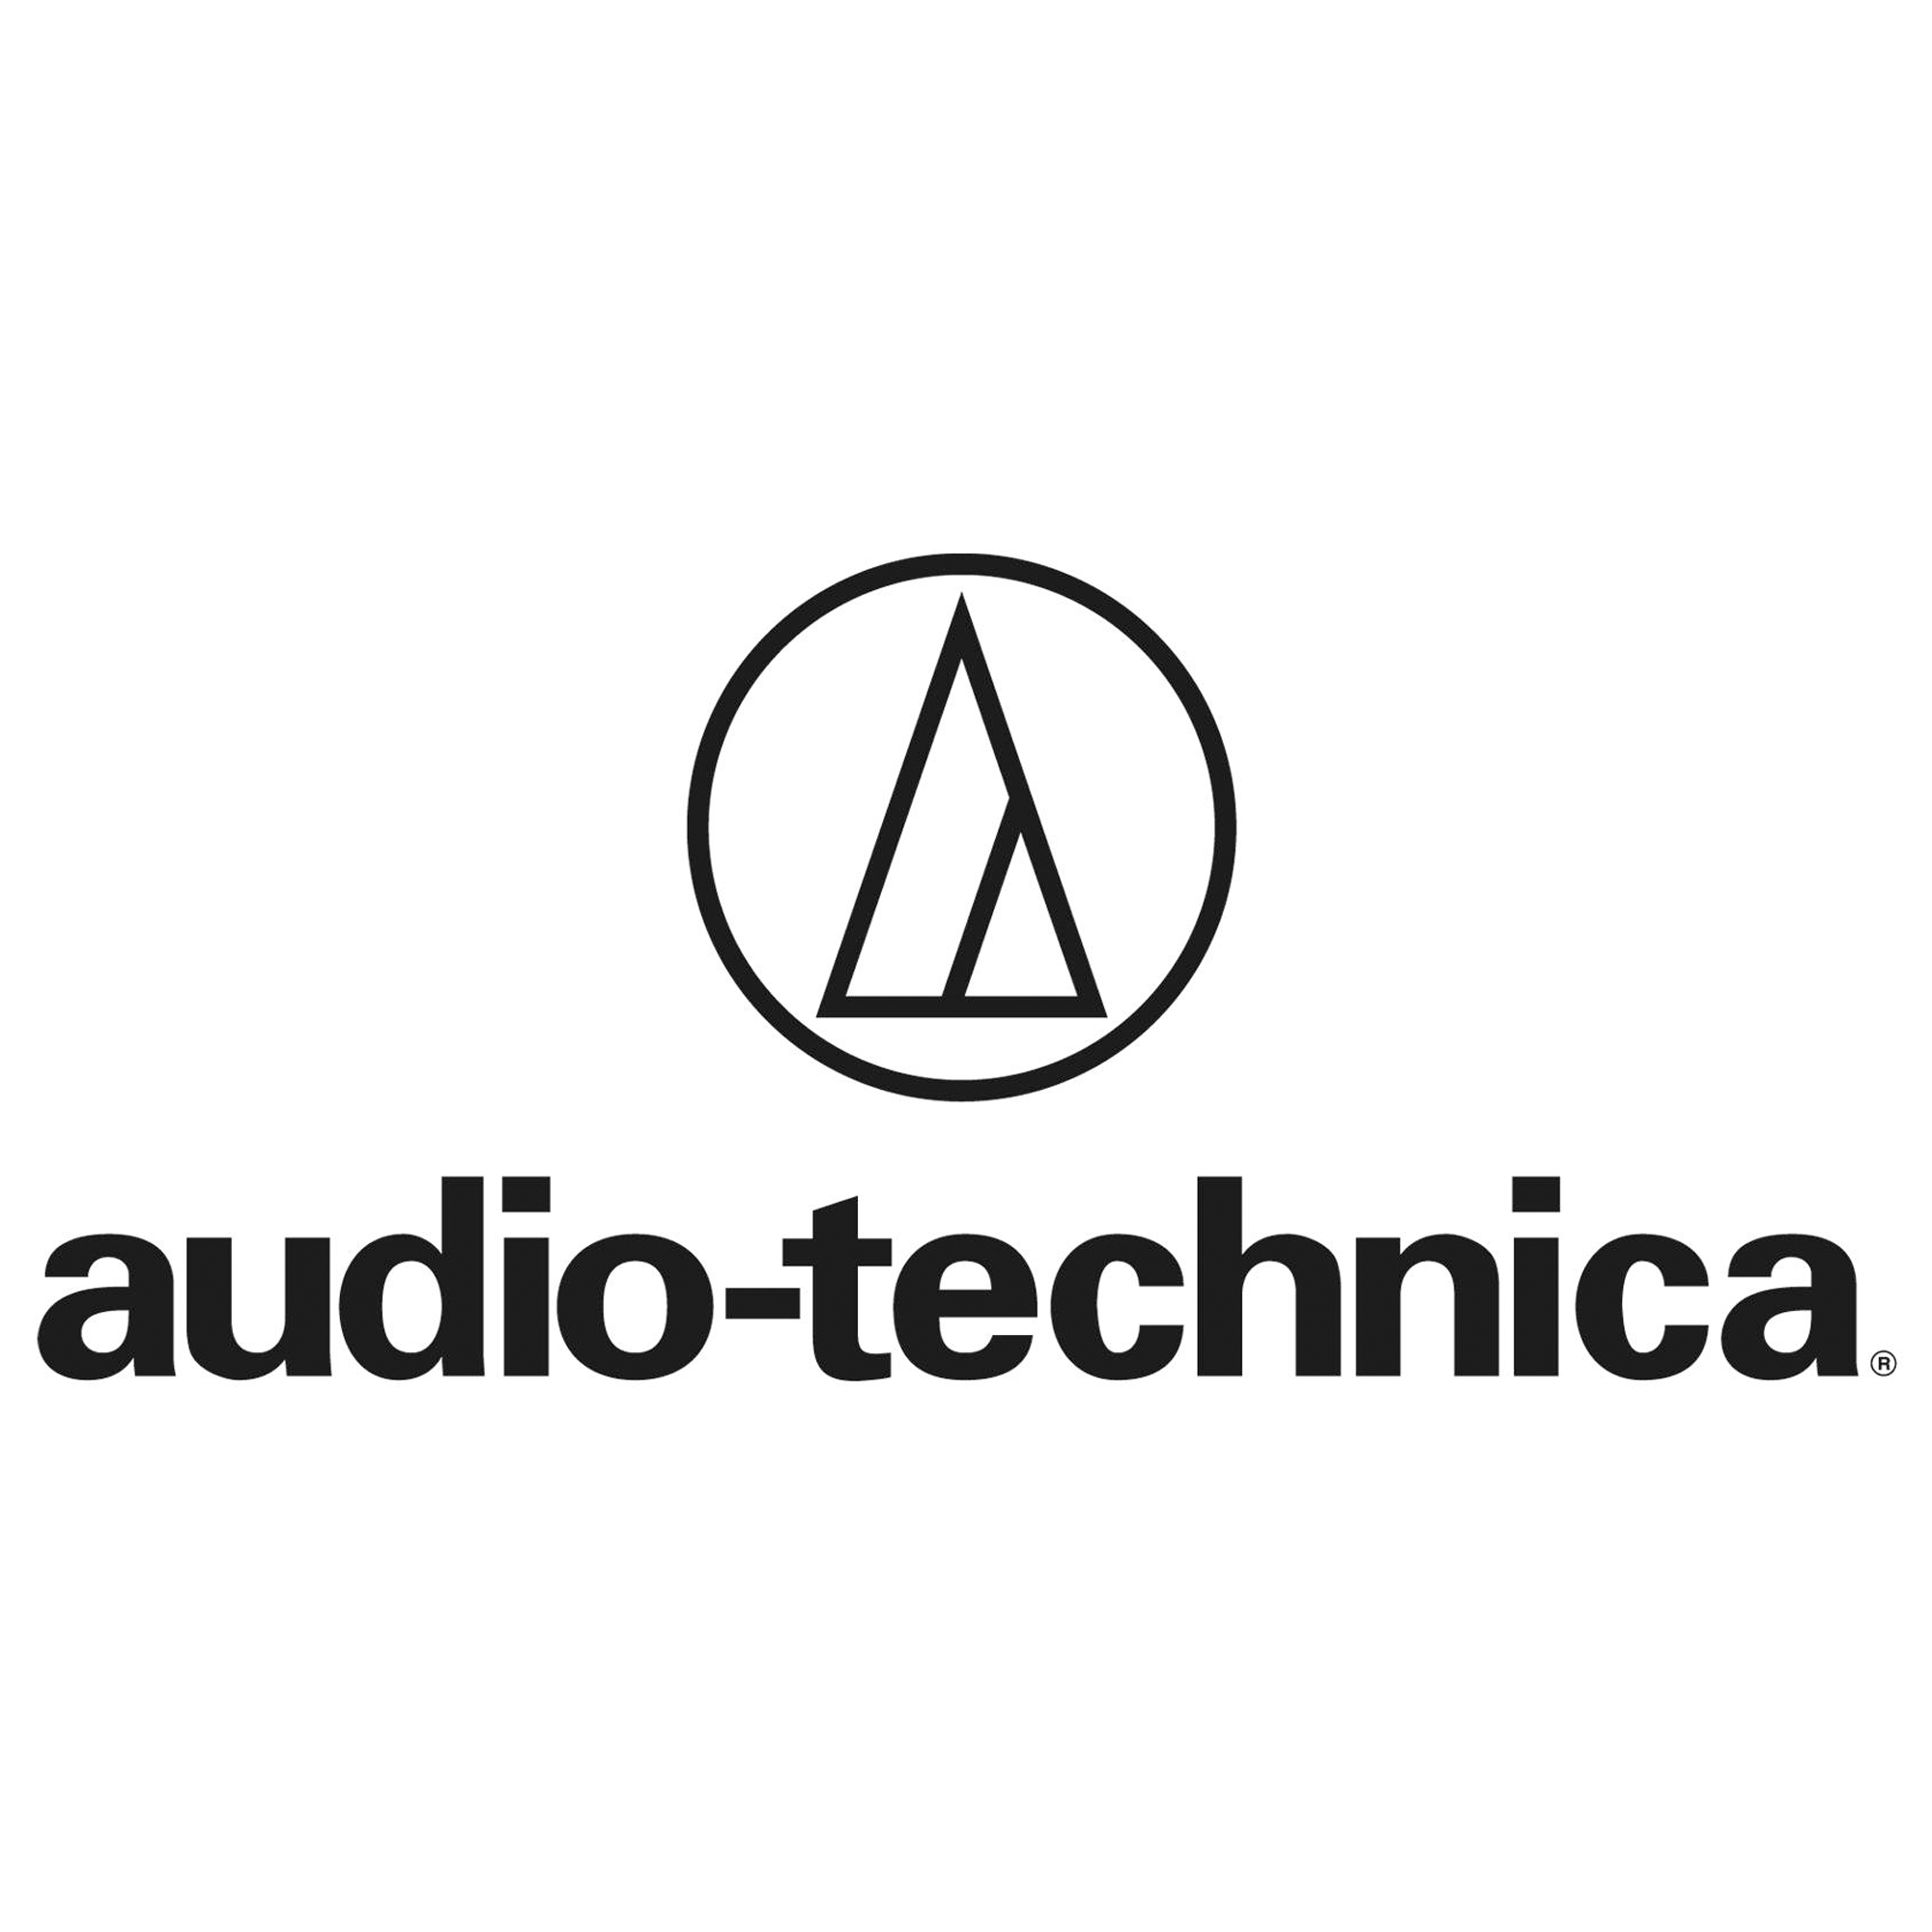 Audio-Technica 24BEAM 2.4 GHz Helical Antenna